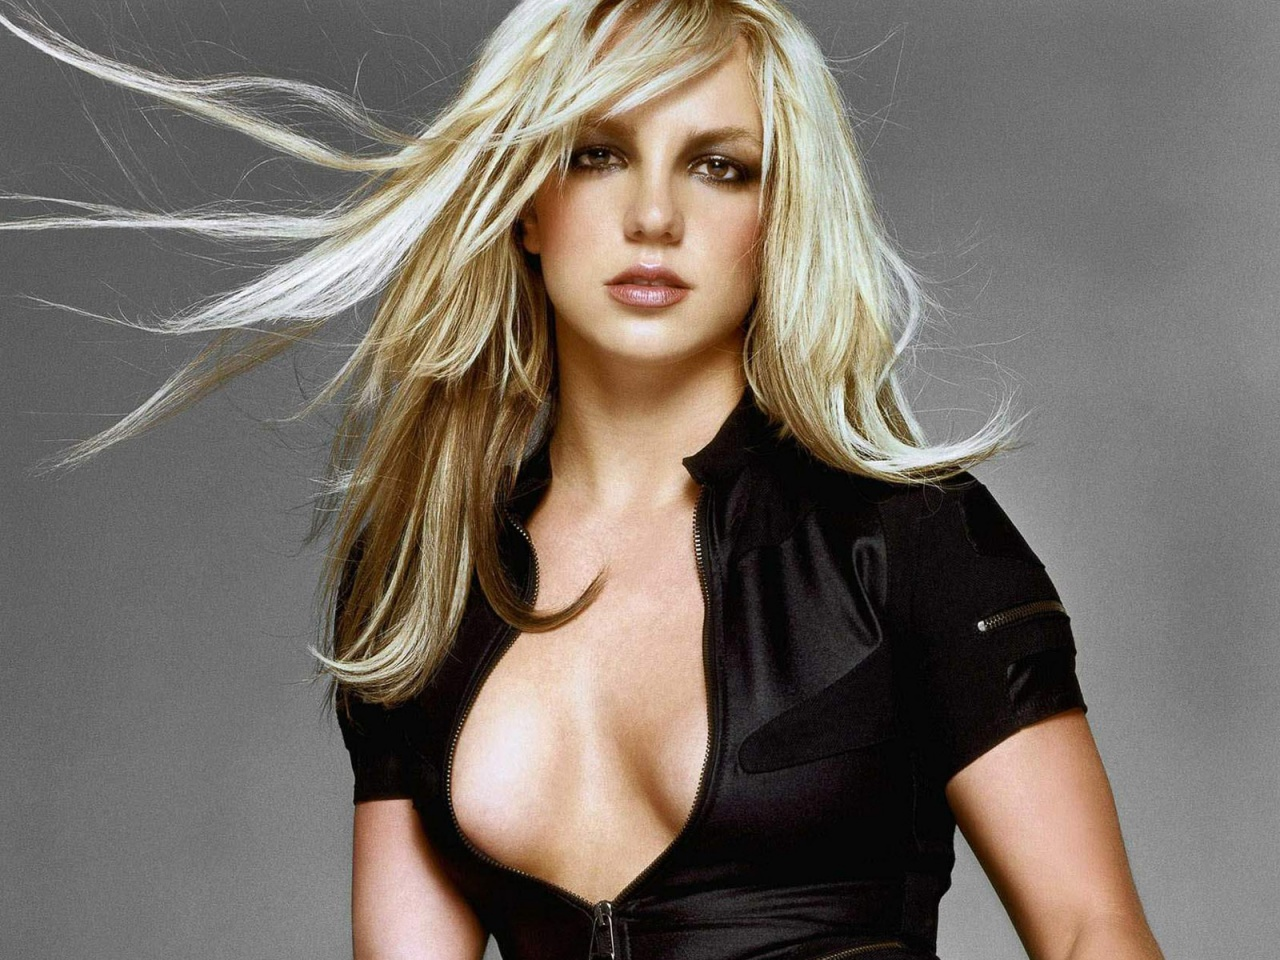 Sexy pictures of britney spears images 63